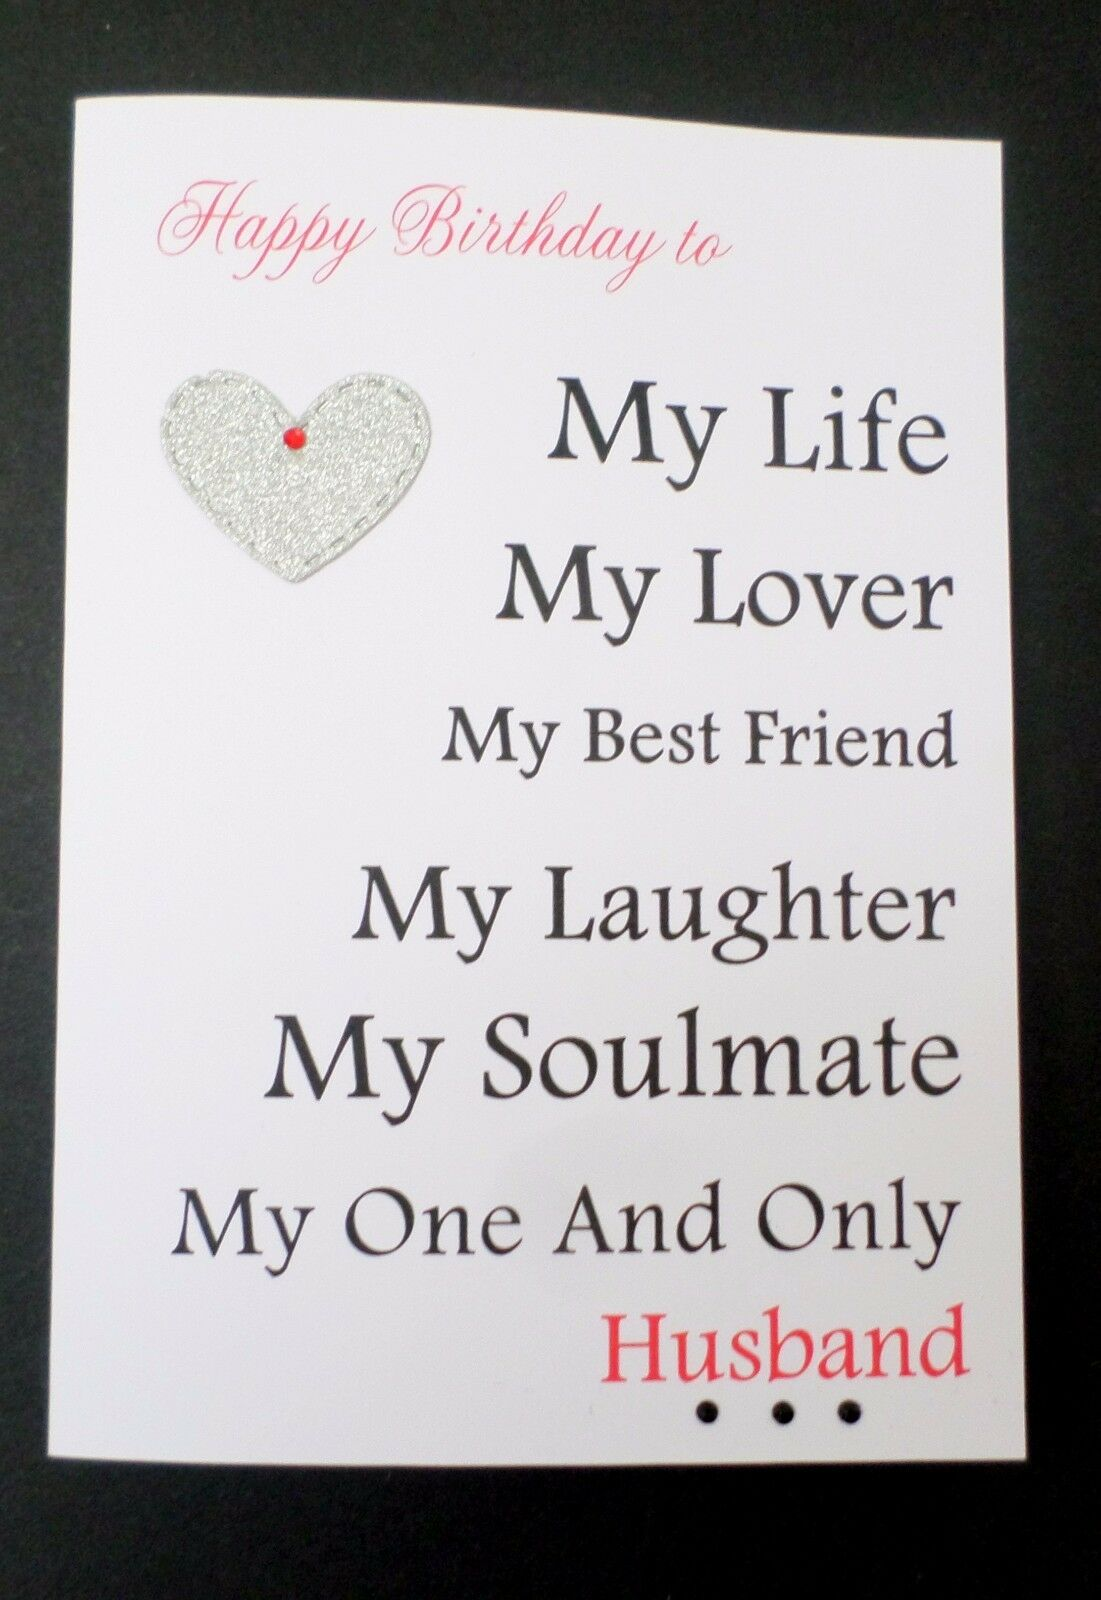 Details about Handmade Personalised Birthday Card Husband Fiance